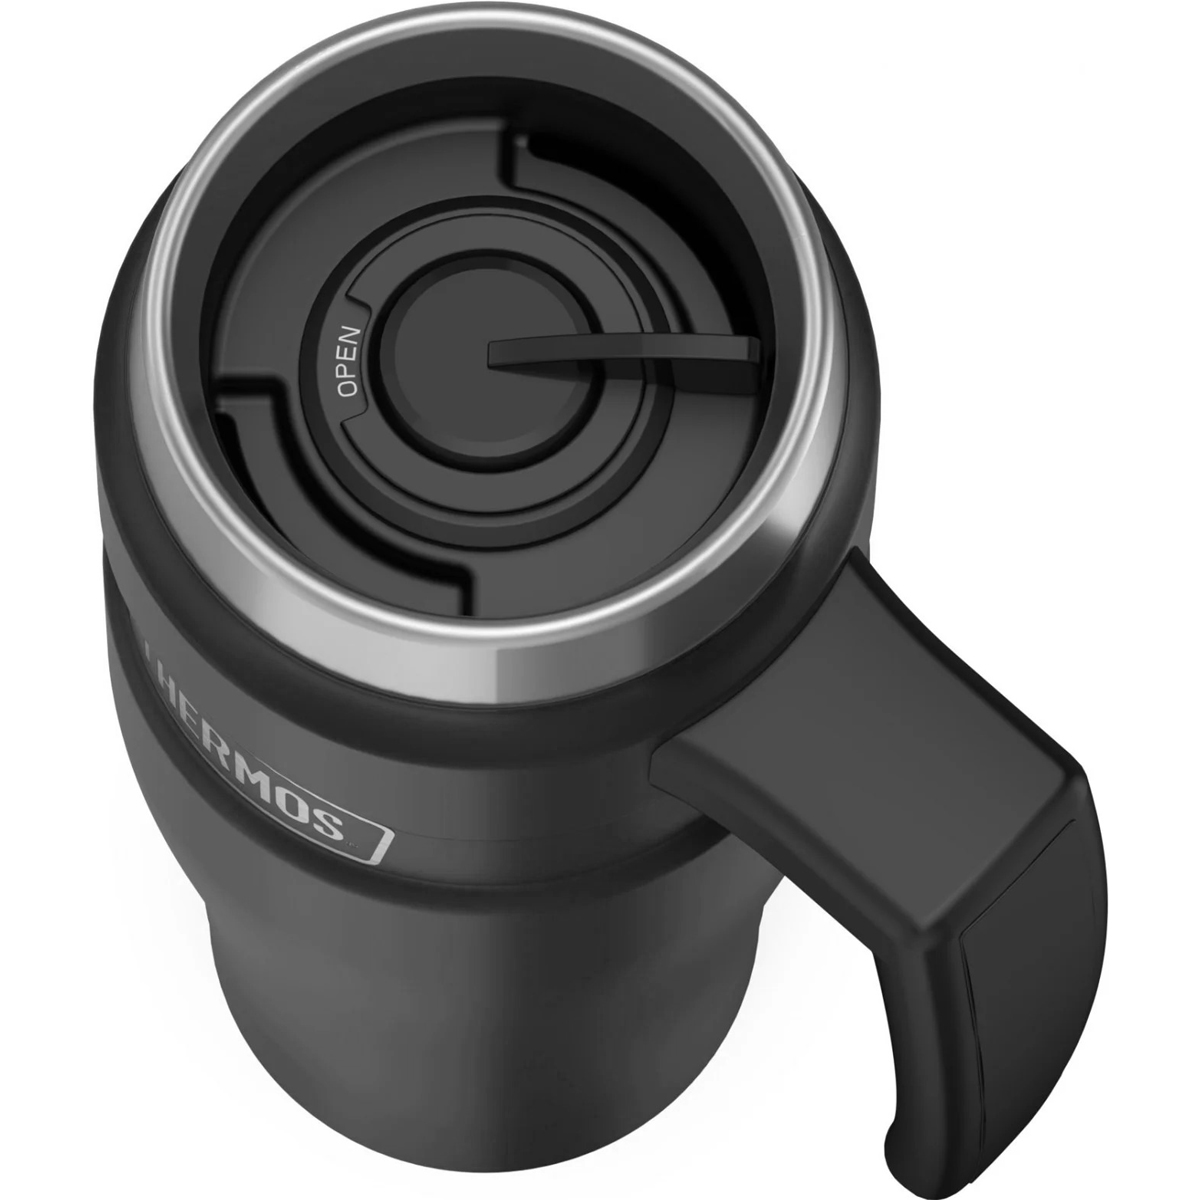 thumbnail 4 - Thermos 16 oz. Stainless King Insulated Stainless Steel Travel Mug with Handle